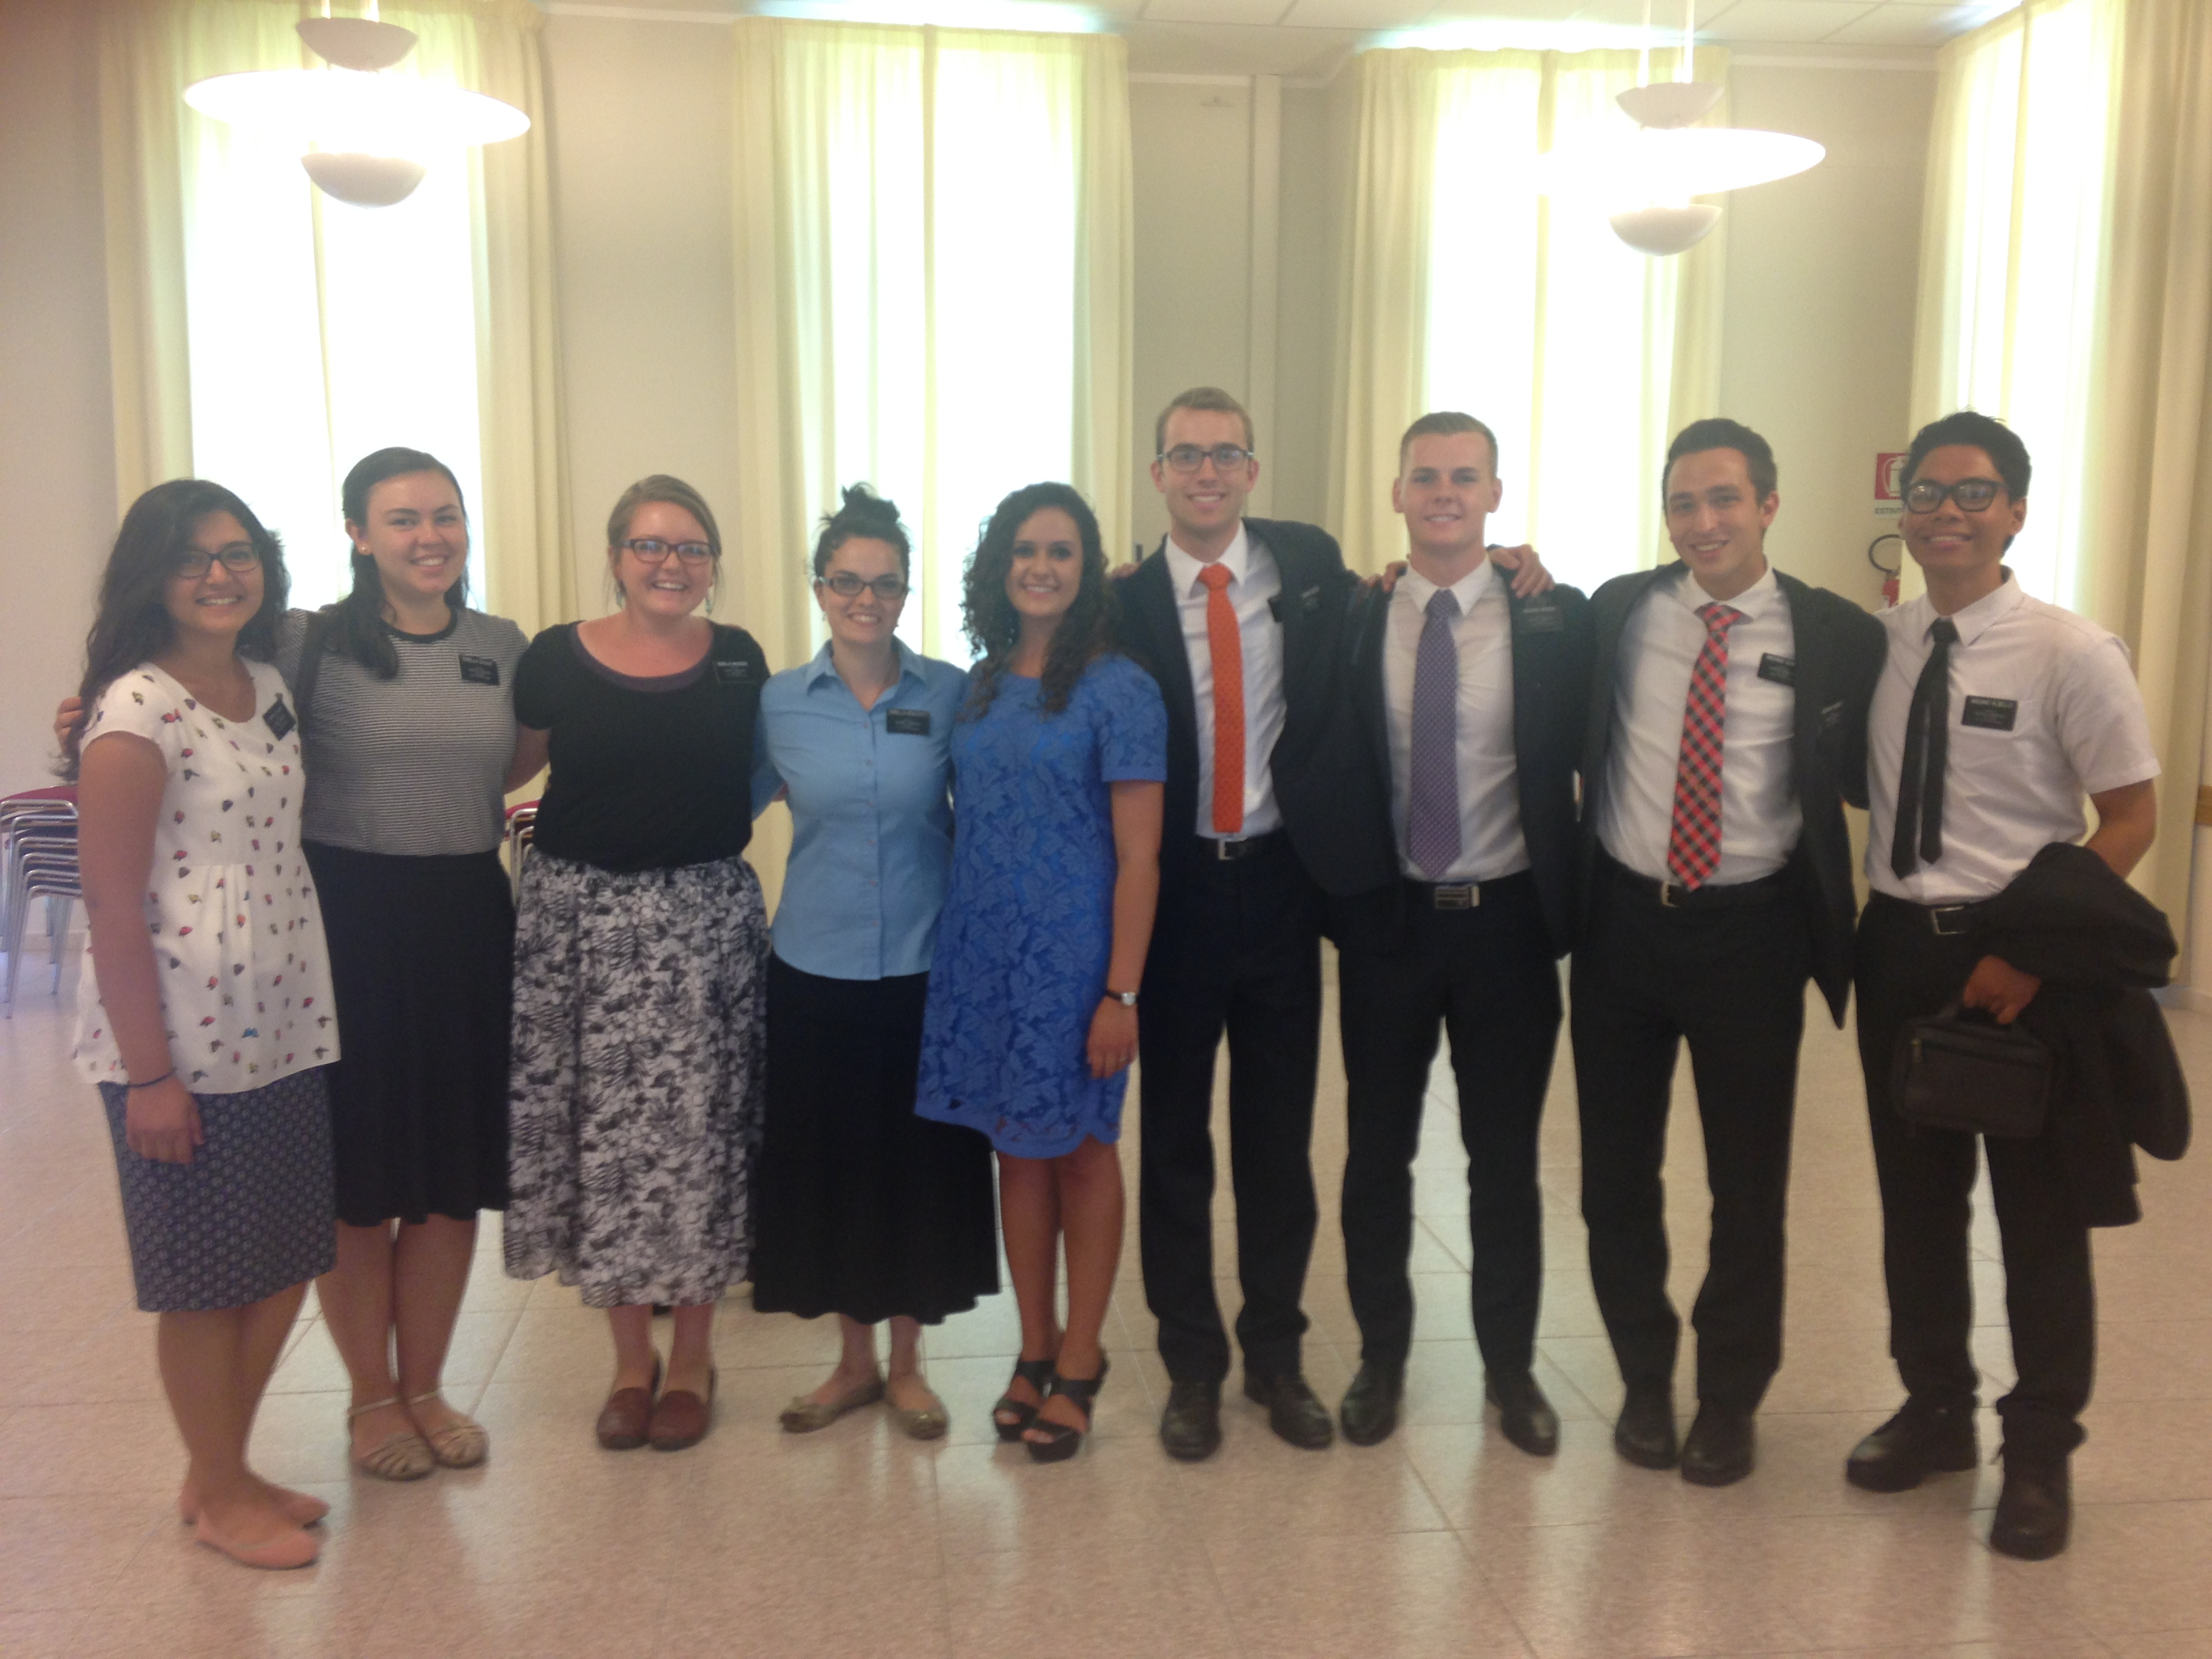 Sorella Battezzato (center) returned to Italy to visit family in Catania and this is a picture of her with our district at church on 7/31/16.